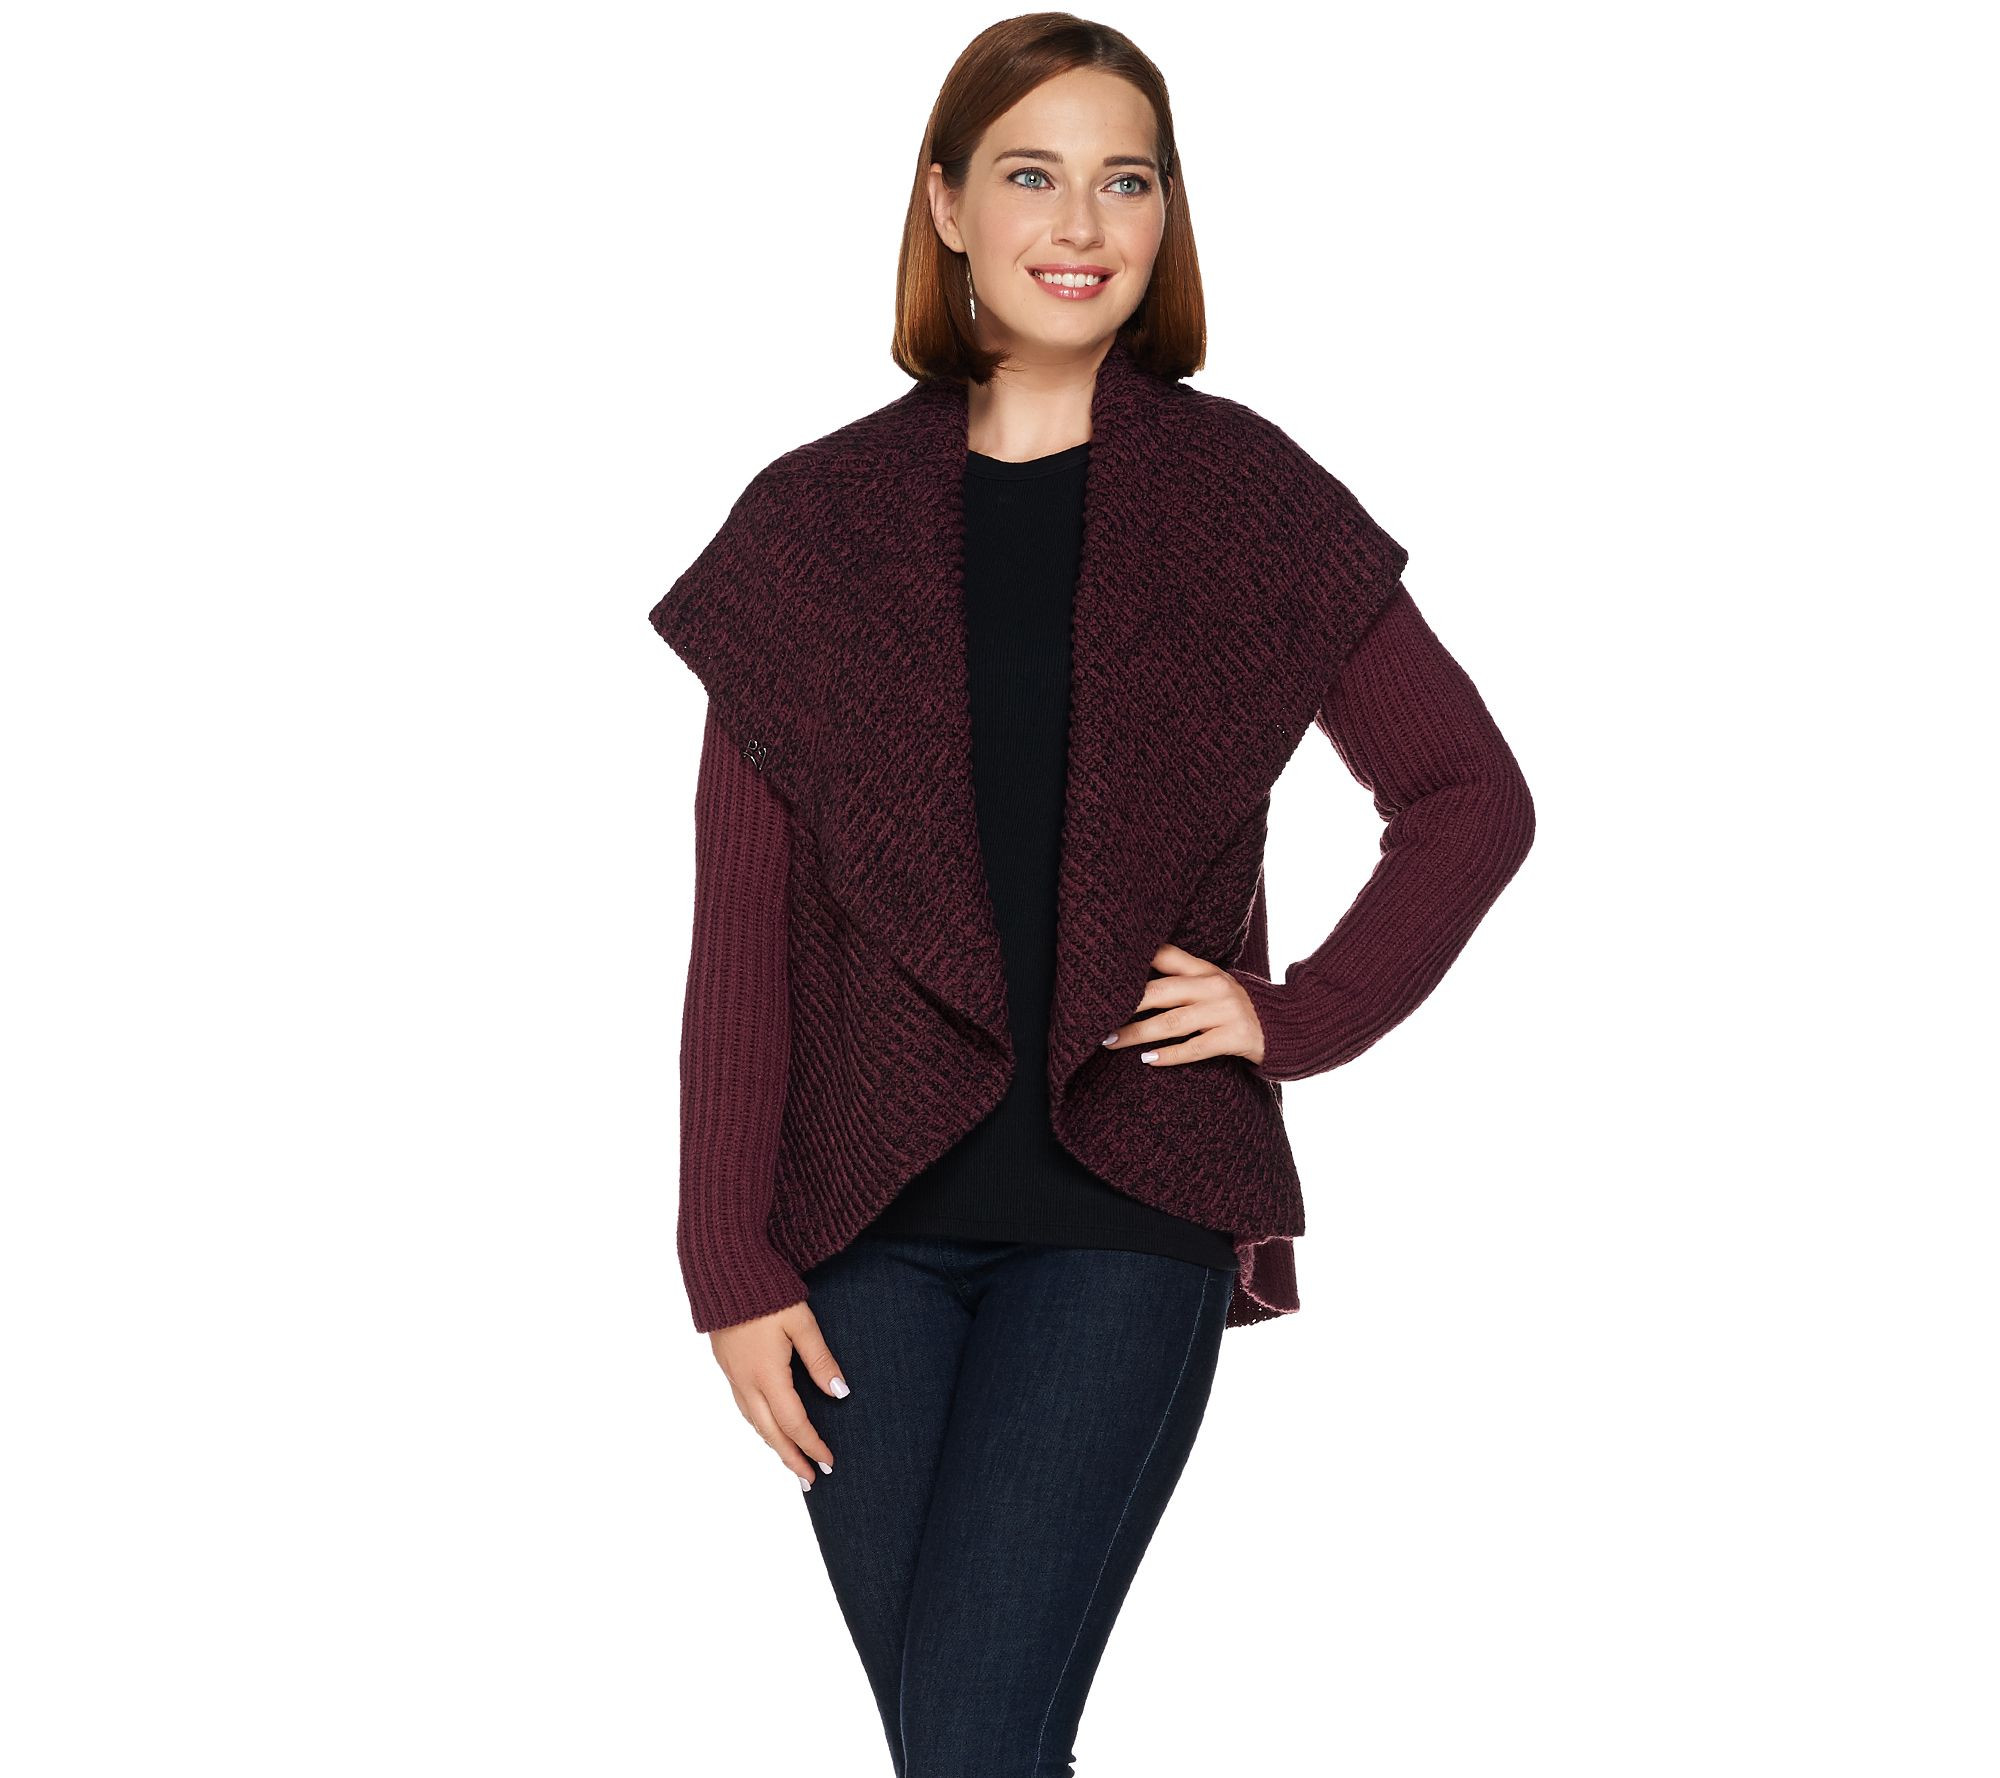 Best Of Lisa Rinna Collection Open Front Shawl Collar Wrap Sweater Women's Knitted Vest Patterns Of Amazing 48 Ideas Women's Knitted Vest Patterns